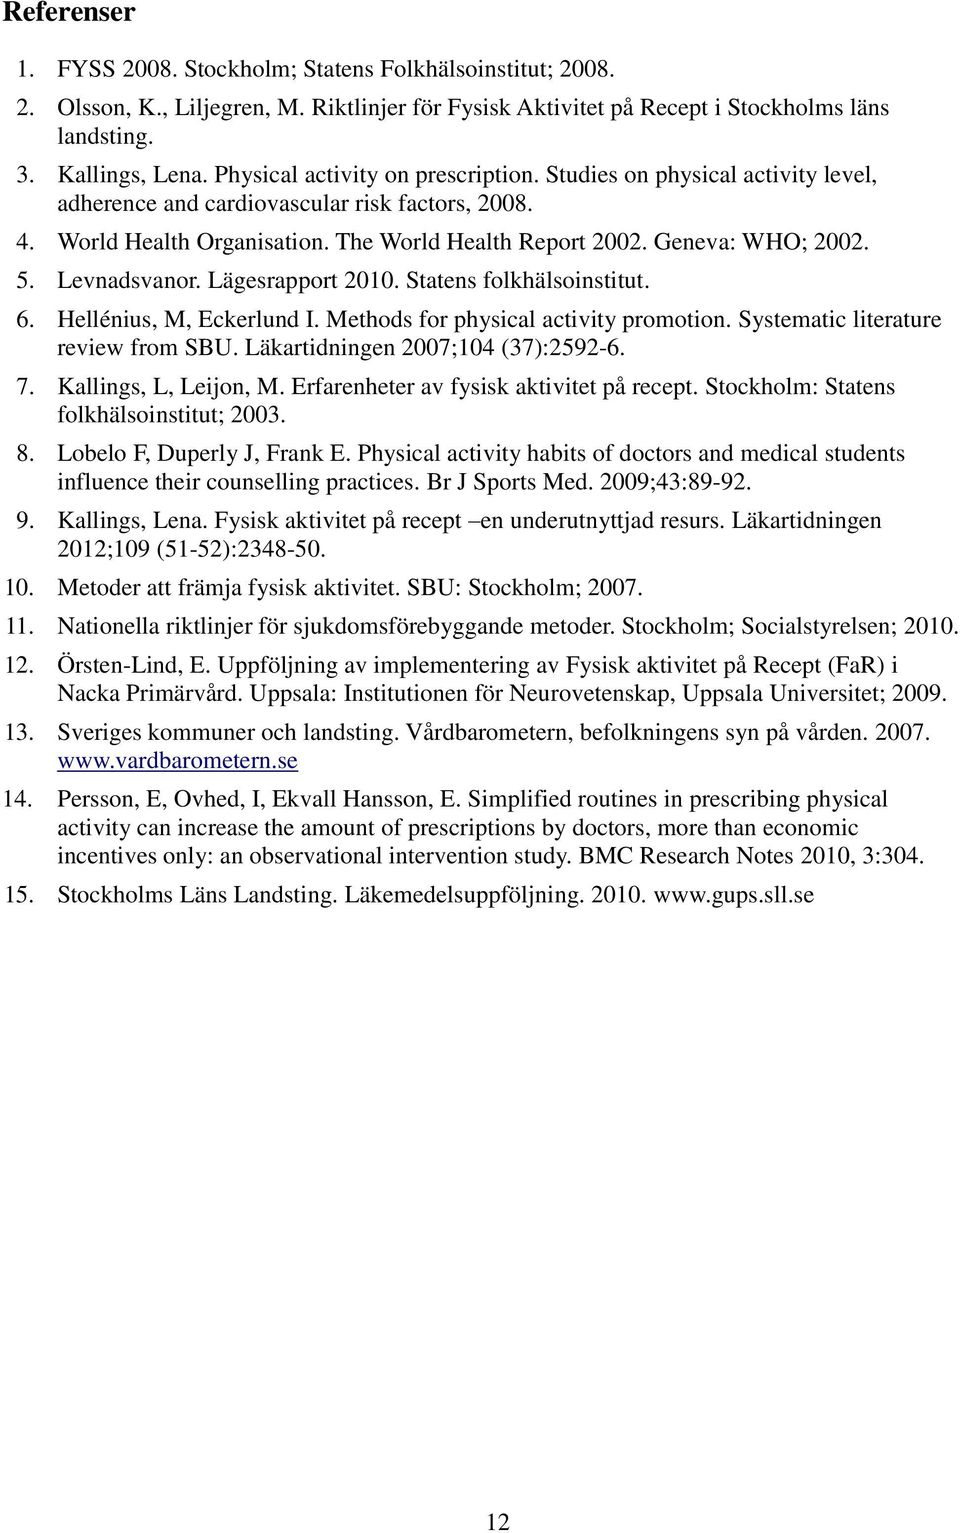 Levnadsvanor. Lägesrapport 2. Statens folkhälsoinstitut. 6. Hellénius, M, Eckerlund I. Methods for physical activity promotion. Systematic literature review from SBU. Läkartidningen 27;4 (37):2592-6.